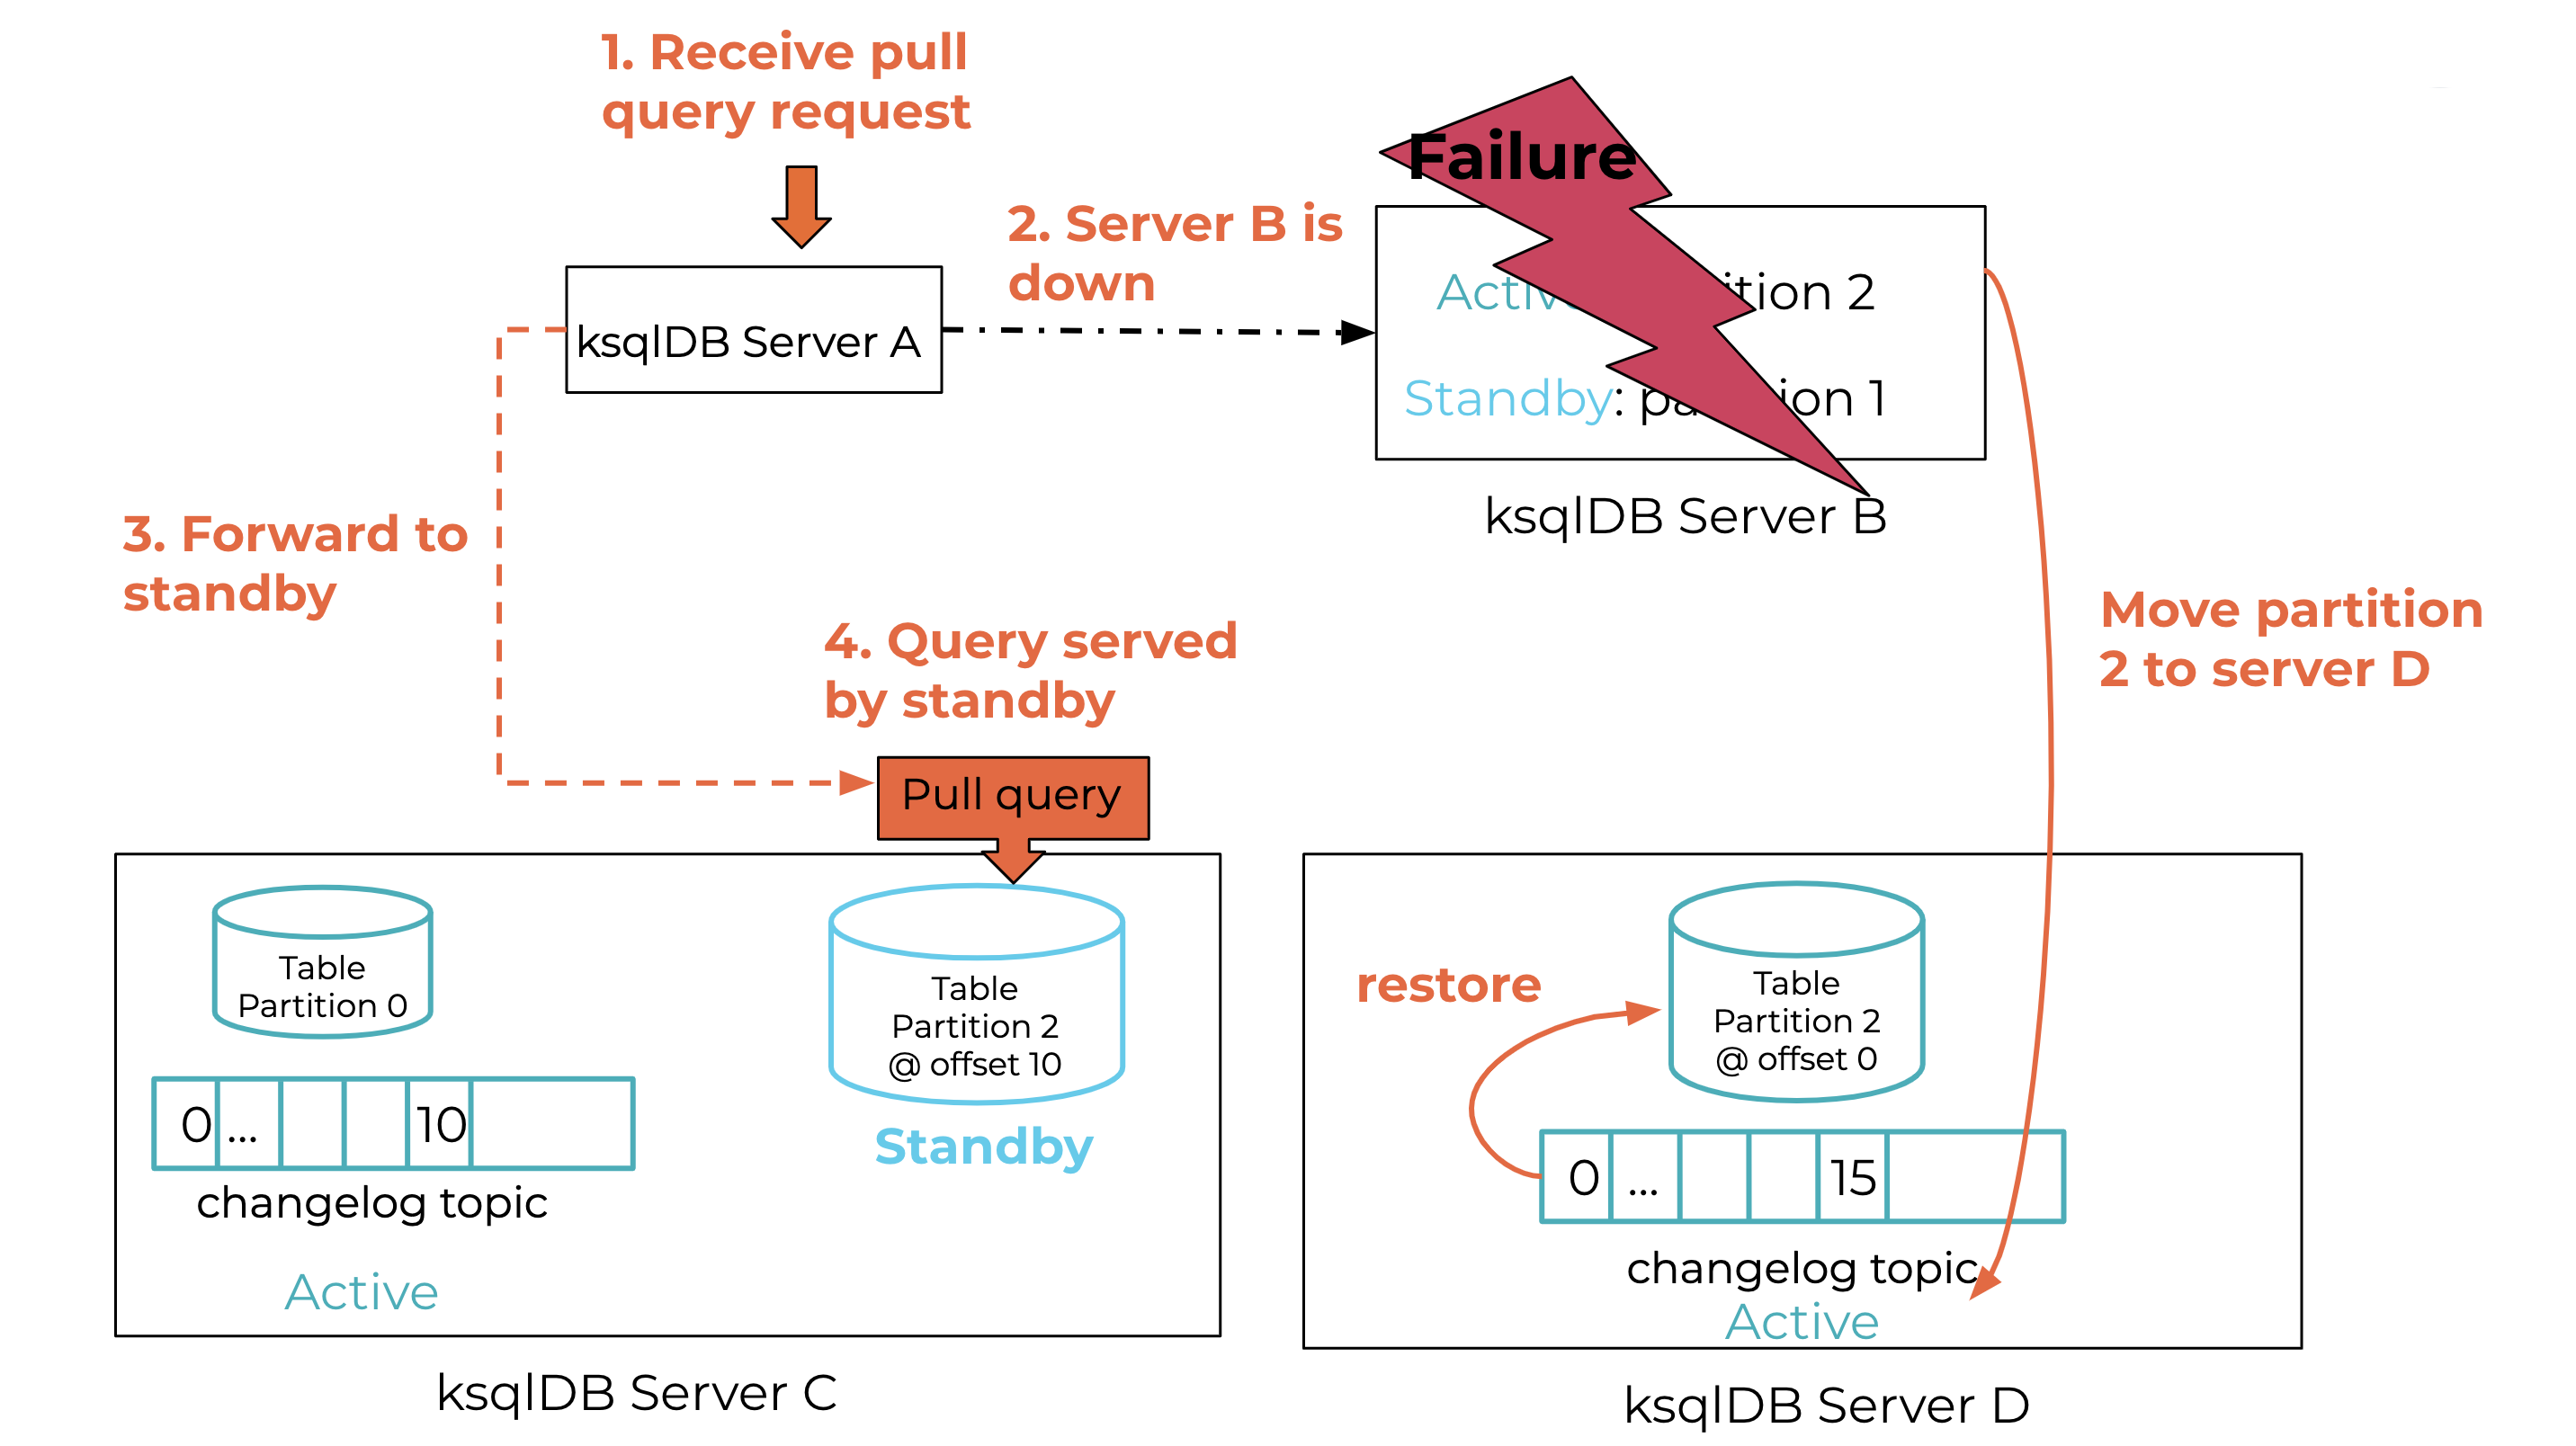 Pull query routing during failure recovery